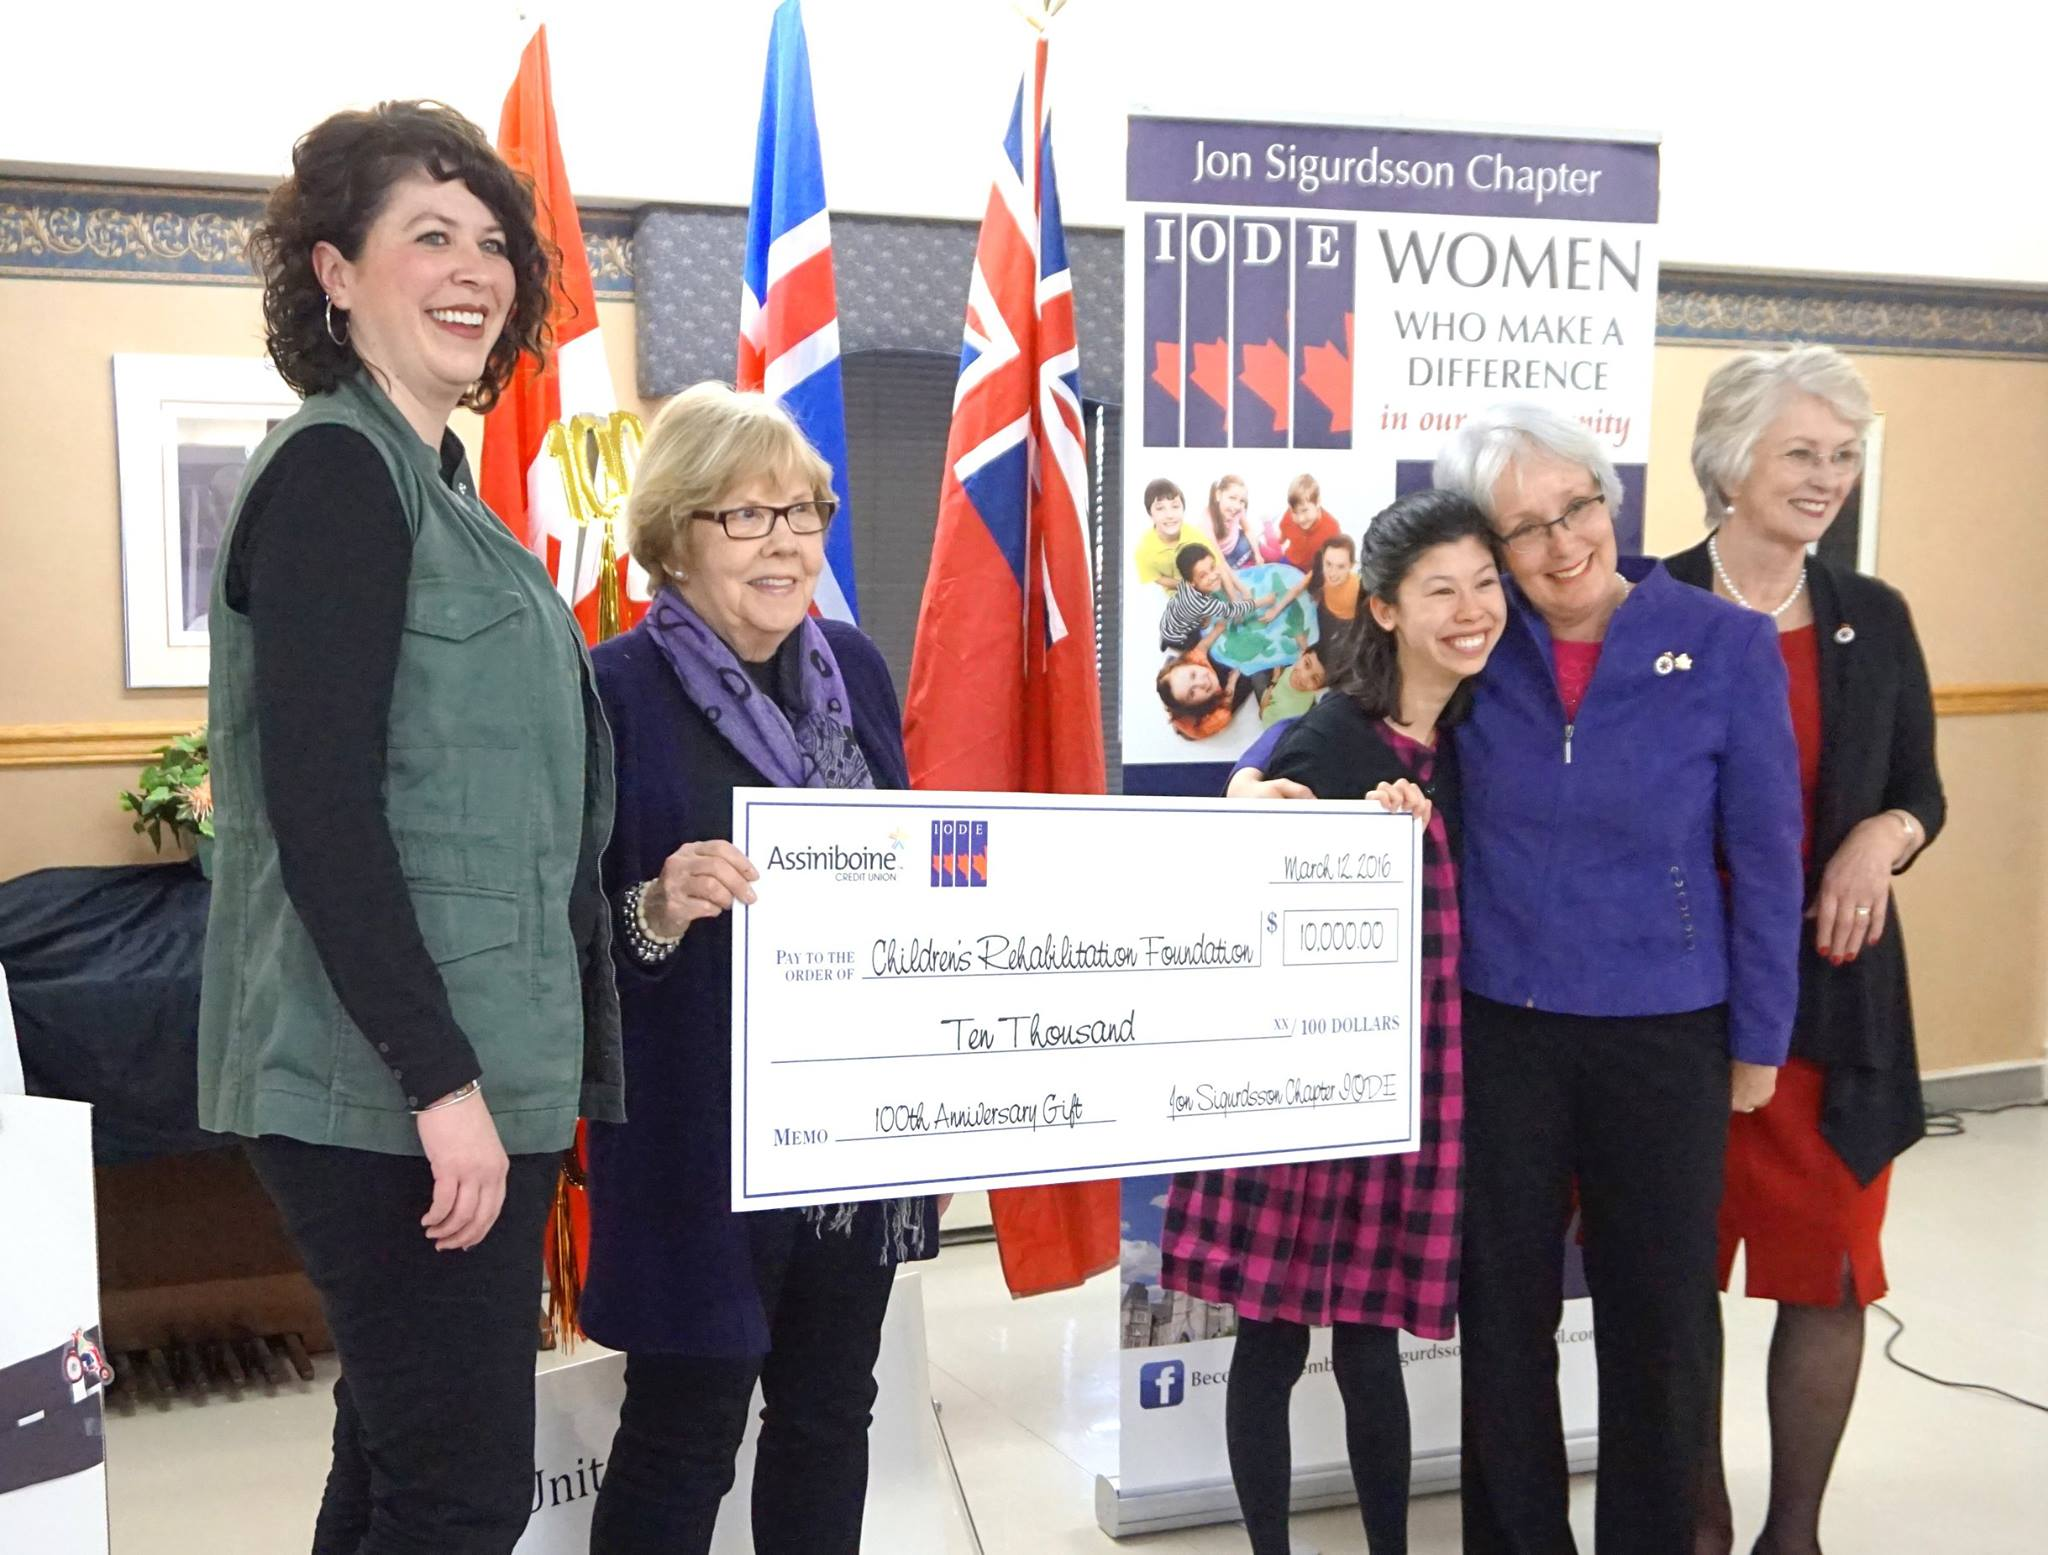 Presentation of the $10,000 cheque to Chidren's Rehab Centre, represented by Keera and her mother Allison Lyall.